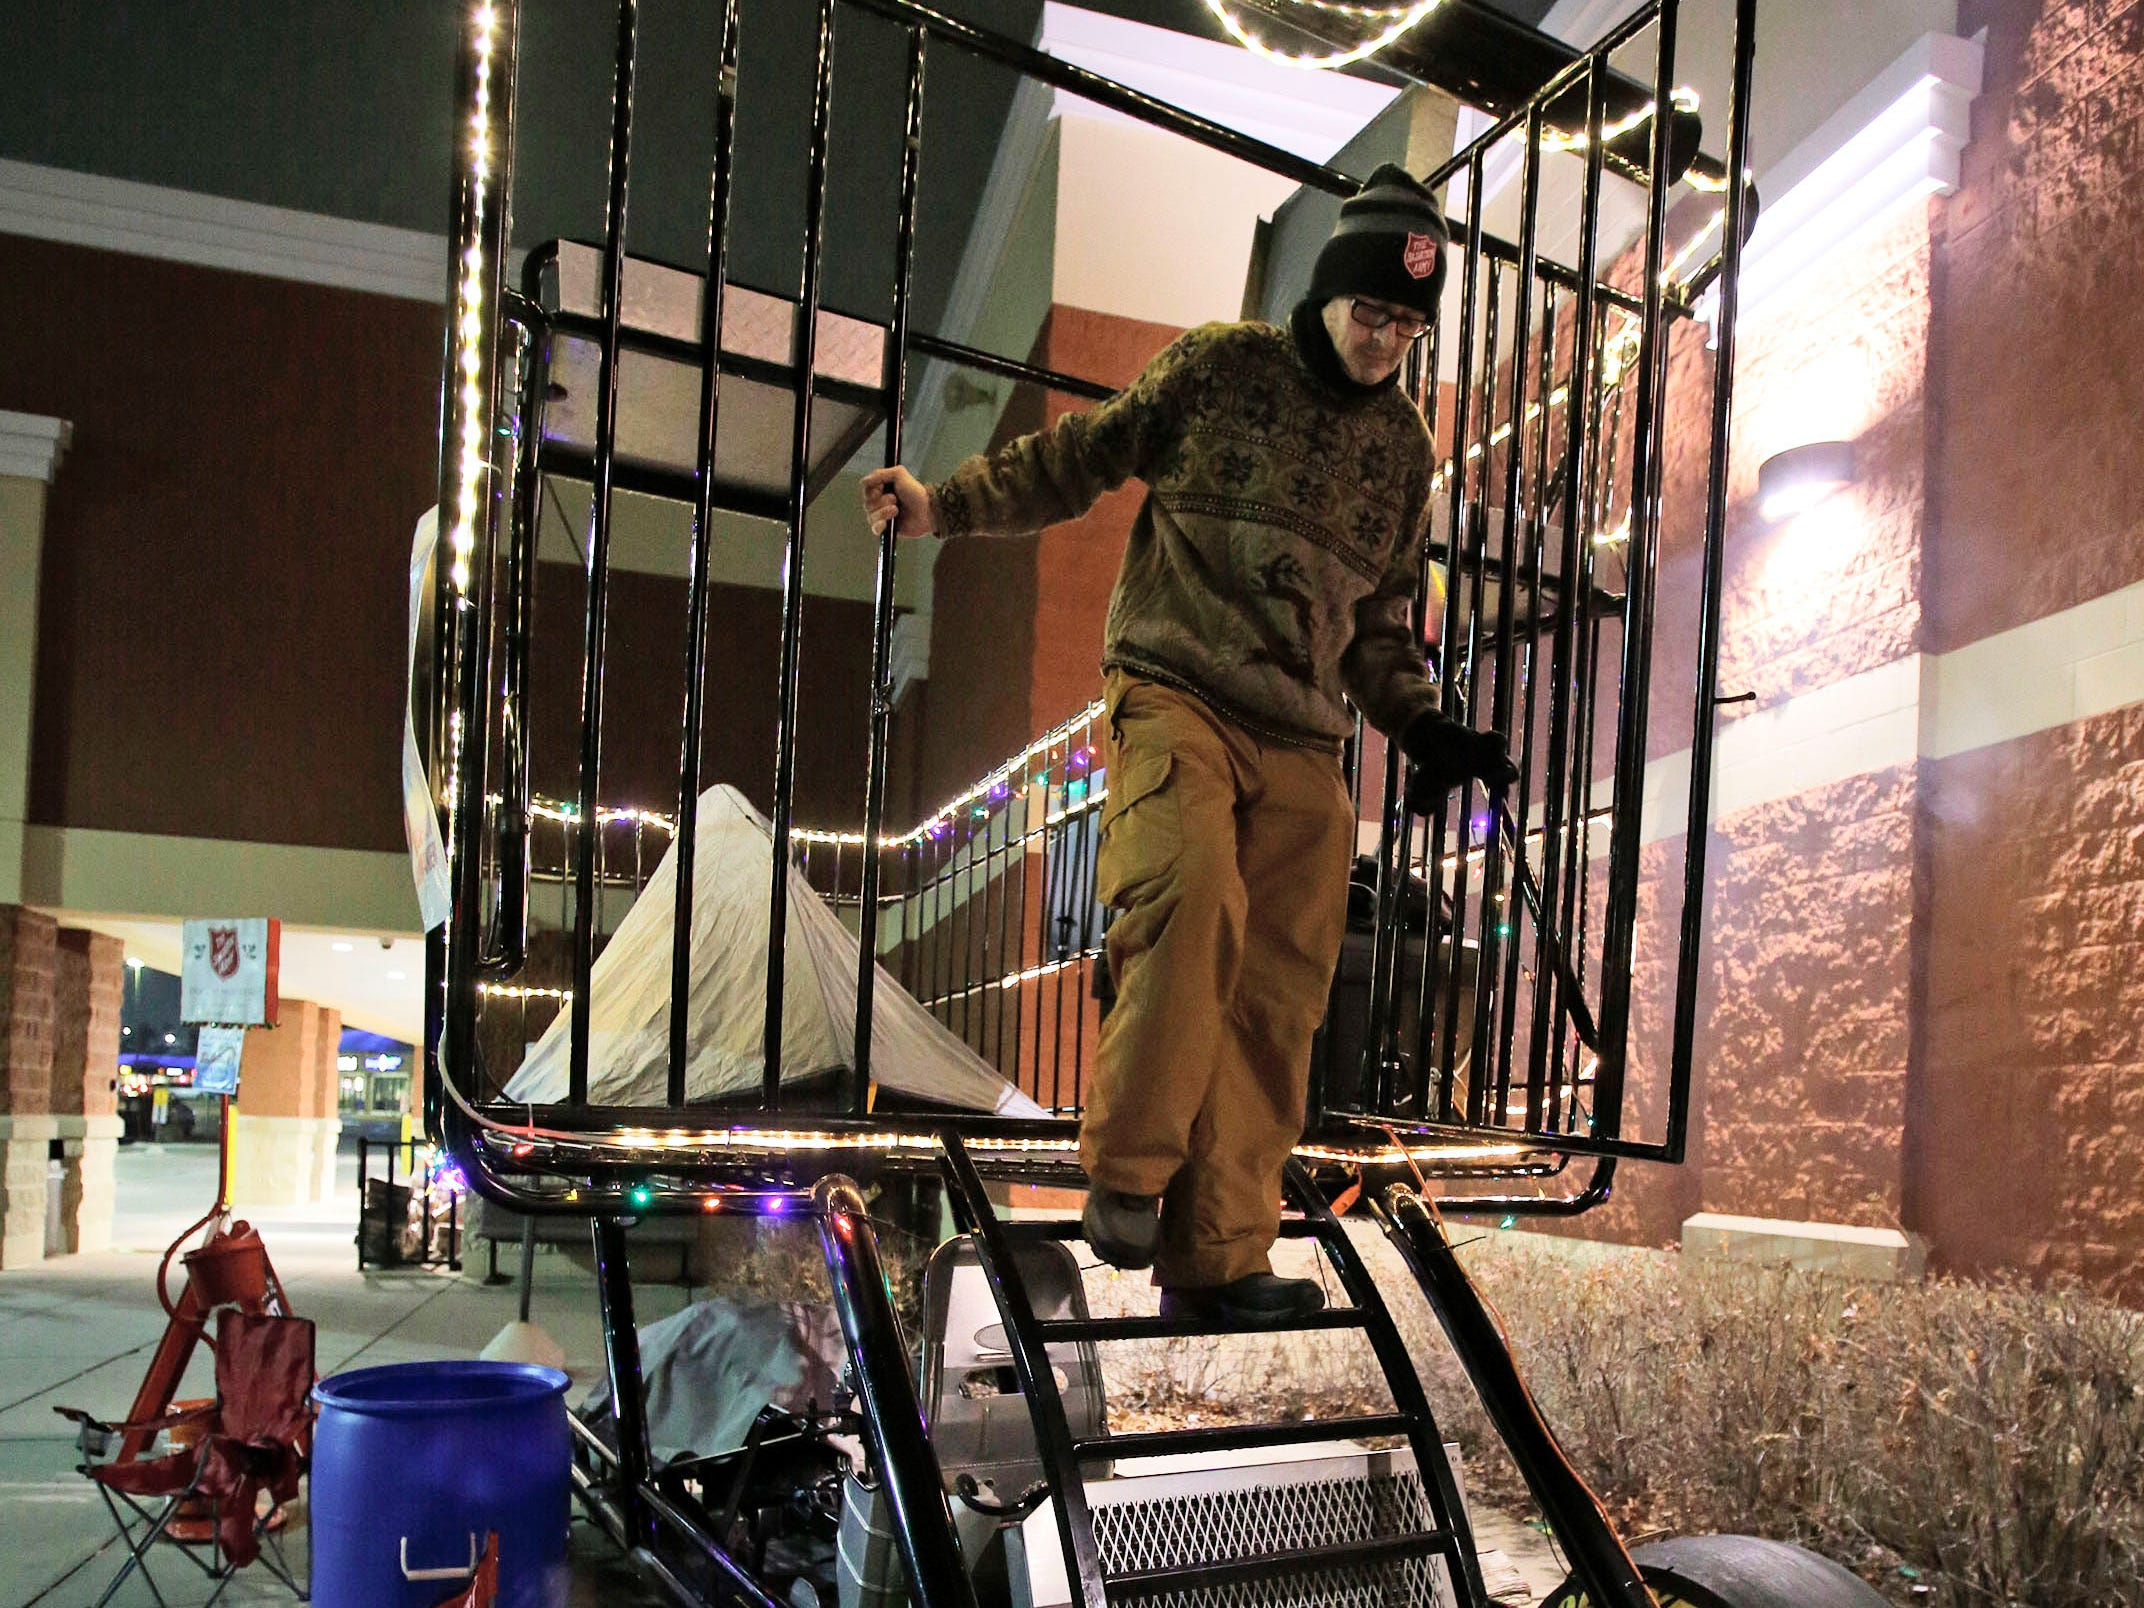 Salvation Army Captain Daryl Mangeri steps down from the giant shopping cart at Festival Foods, Wednesday, December 12, 2018, in Sheboygan, Wis. Mangeri is participating in Freezing for a Reason, which he says is to shine a light on the fact that there are homeless that live among us. He is sleeping overnight outside in a tent on the shopping cart, which he says is a symbol of the homeless in many cities.